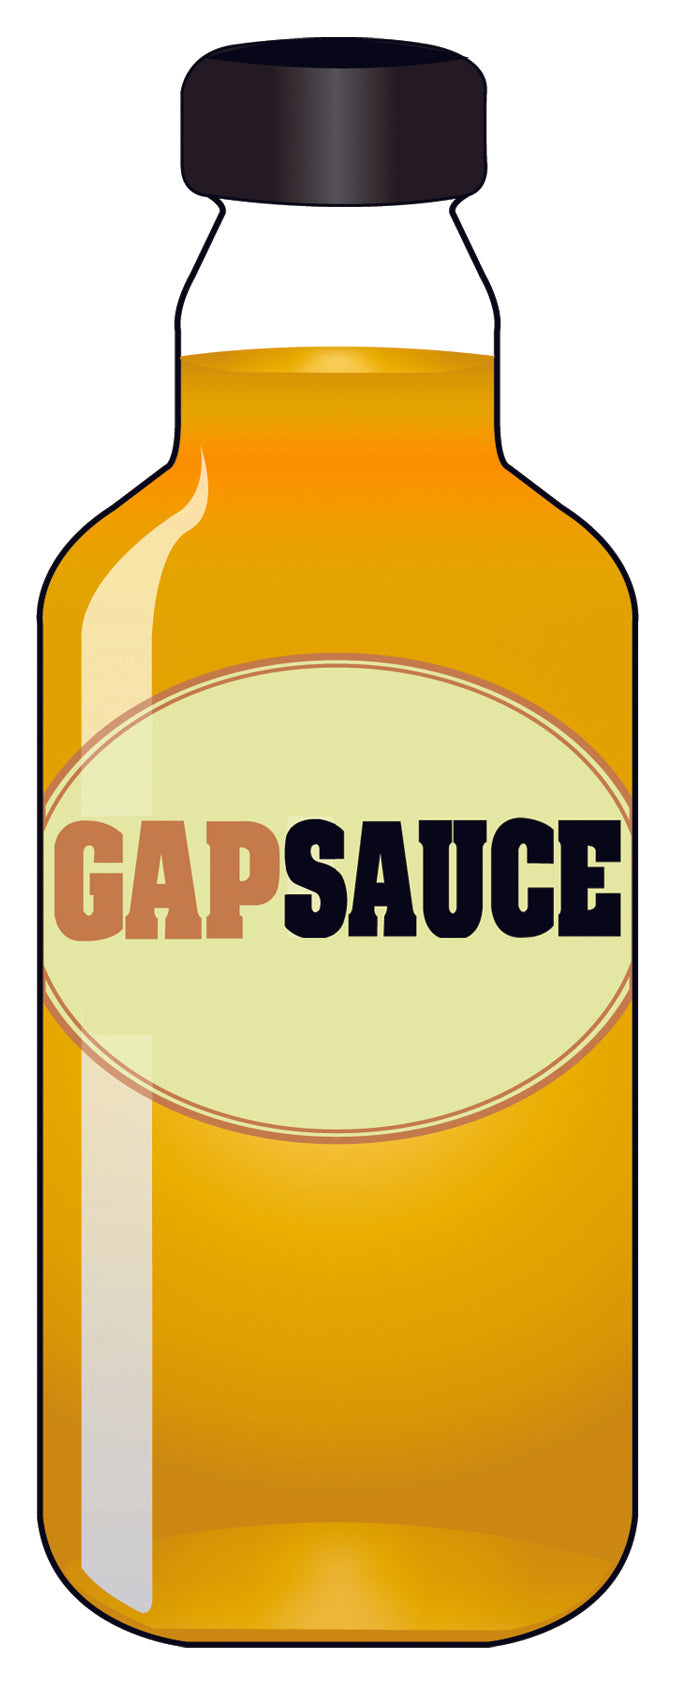 Gapsauce Sticker